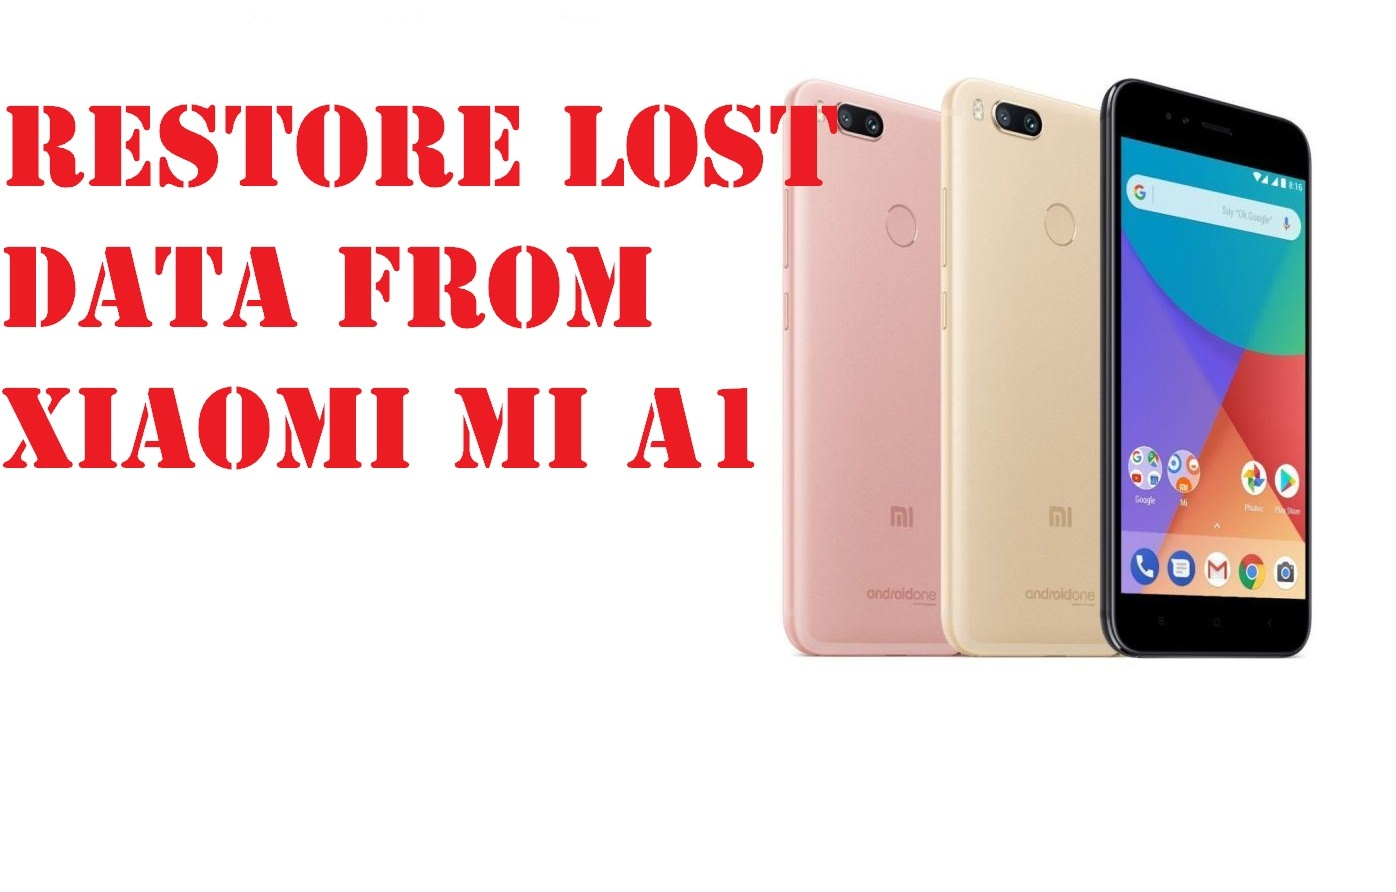 Effective method to restore lost data from Xiaomi Mi A1 phone